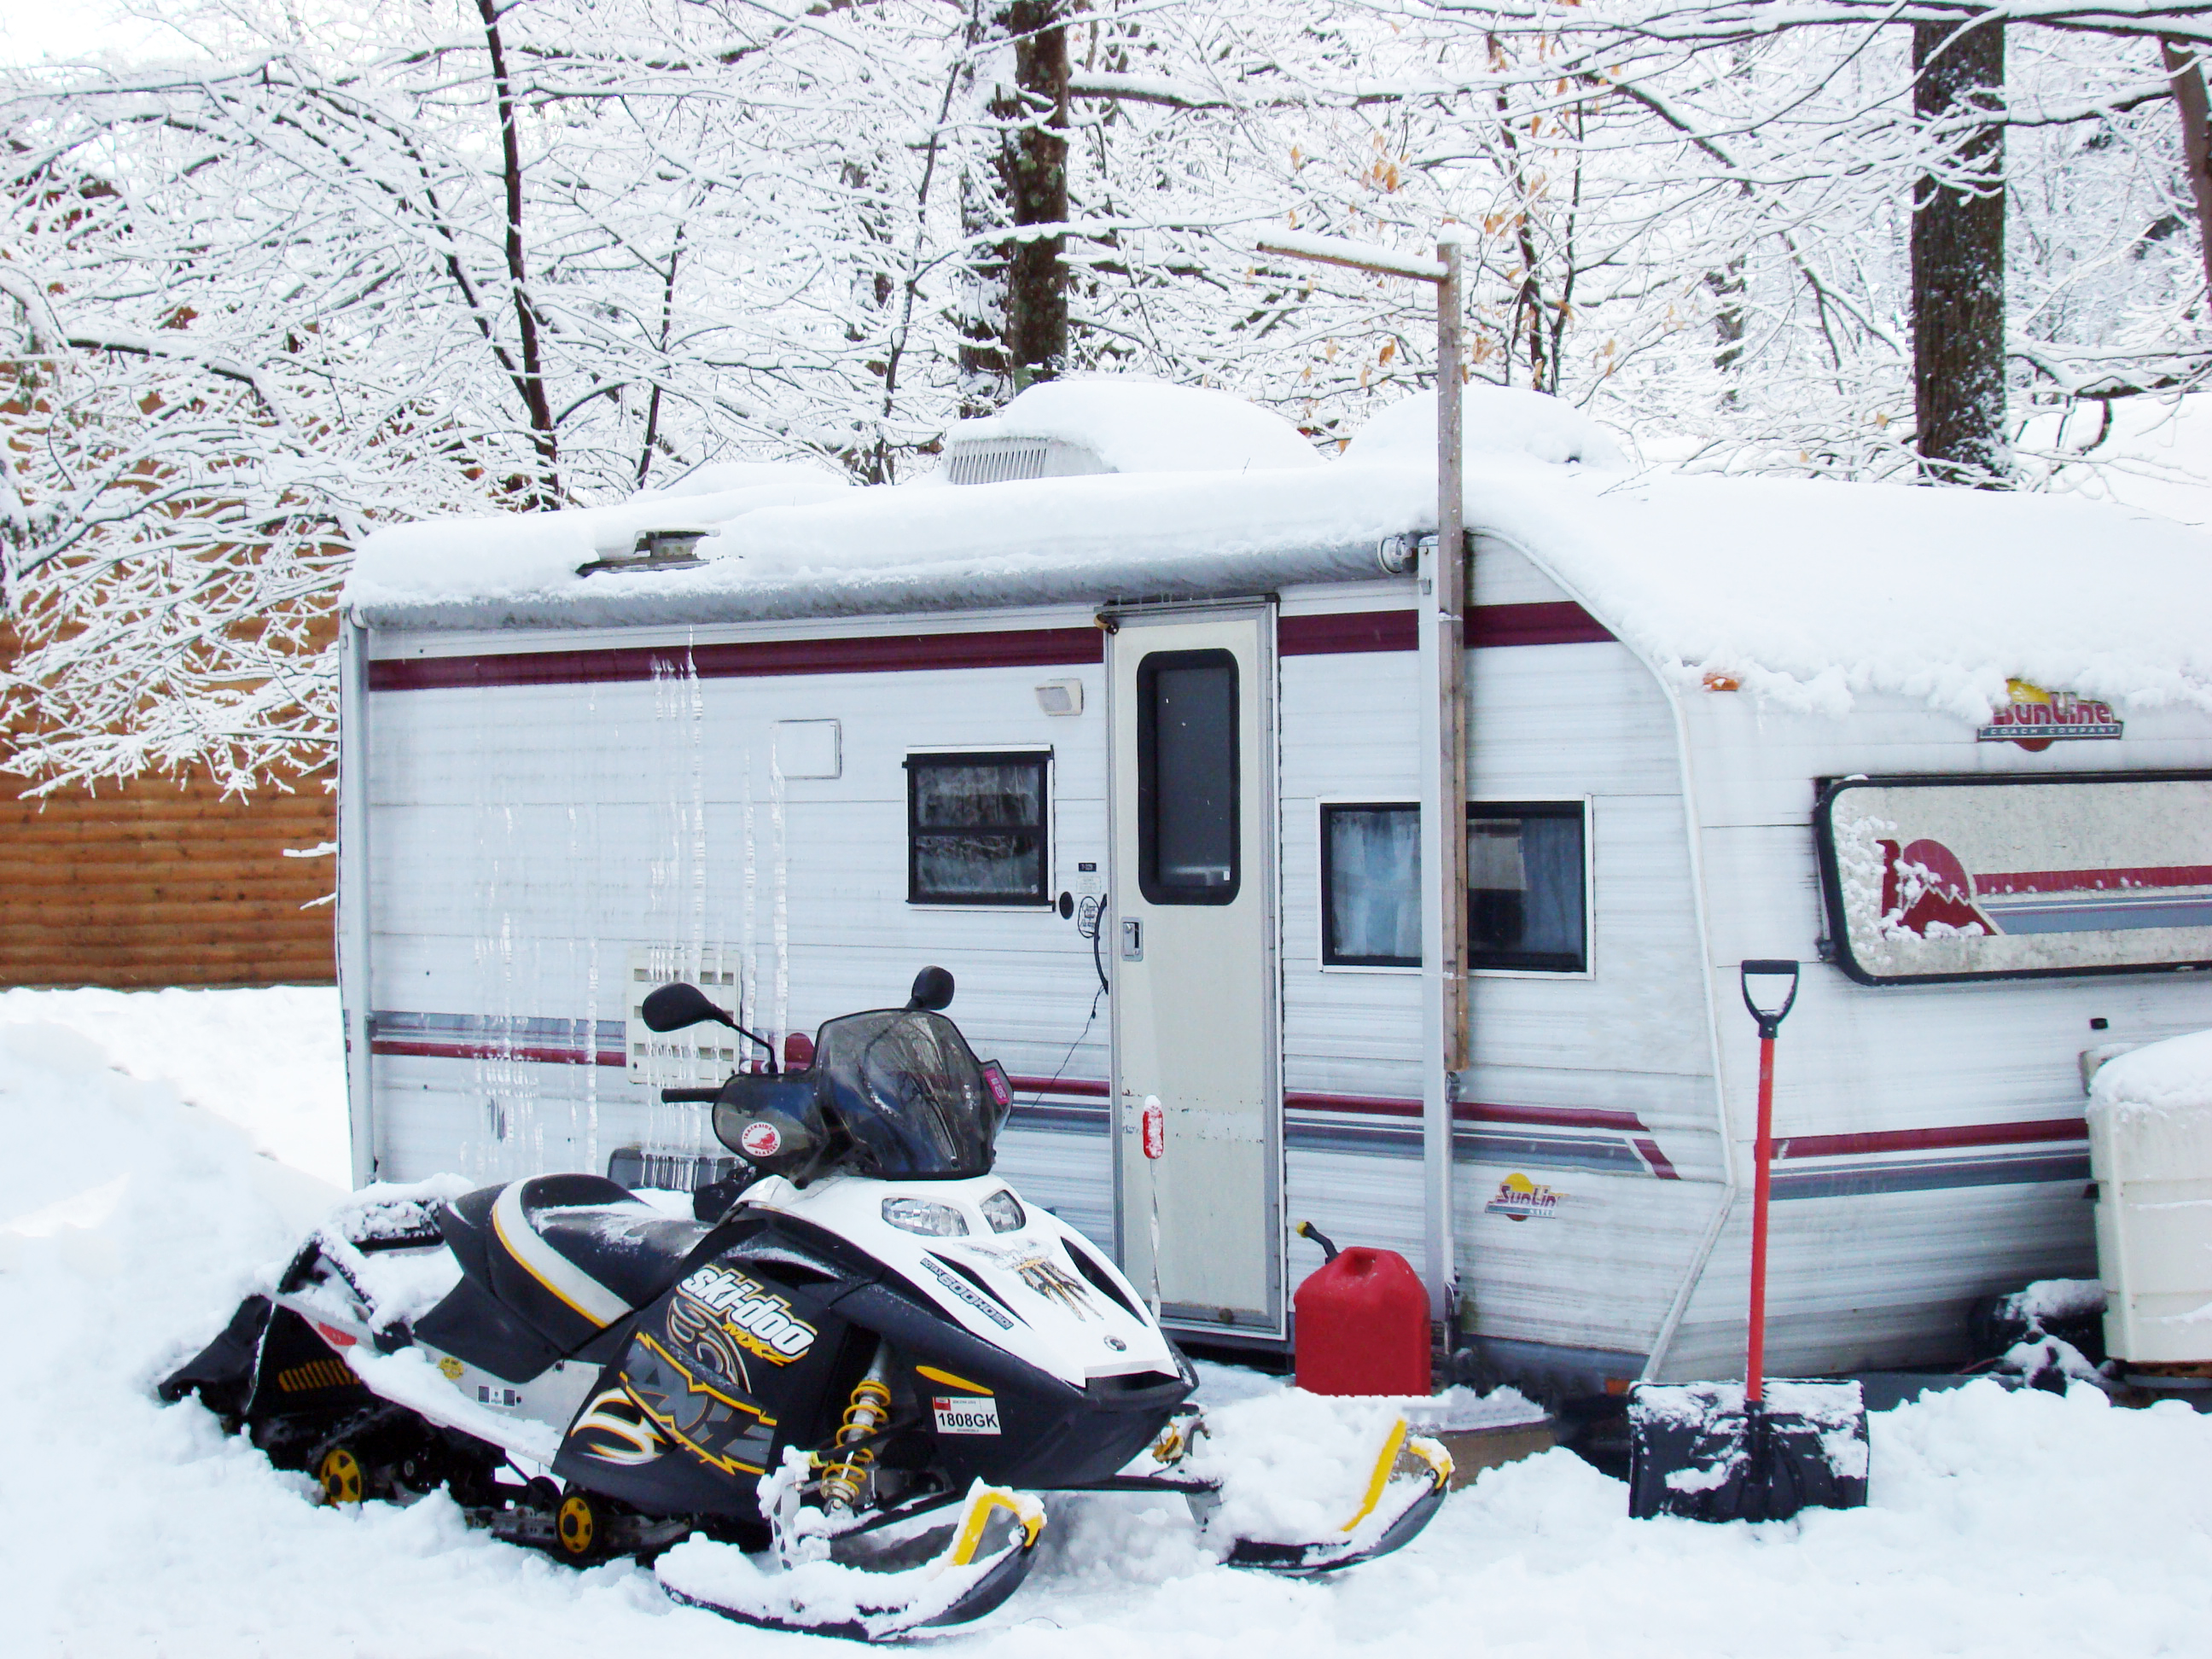 A camper and a snowmobile in winter